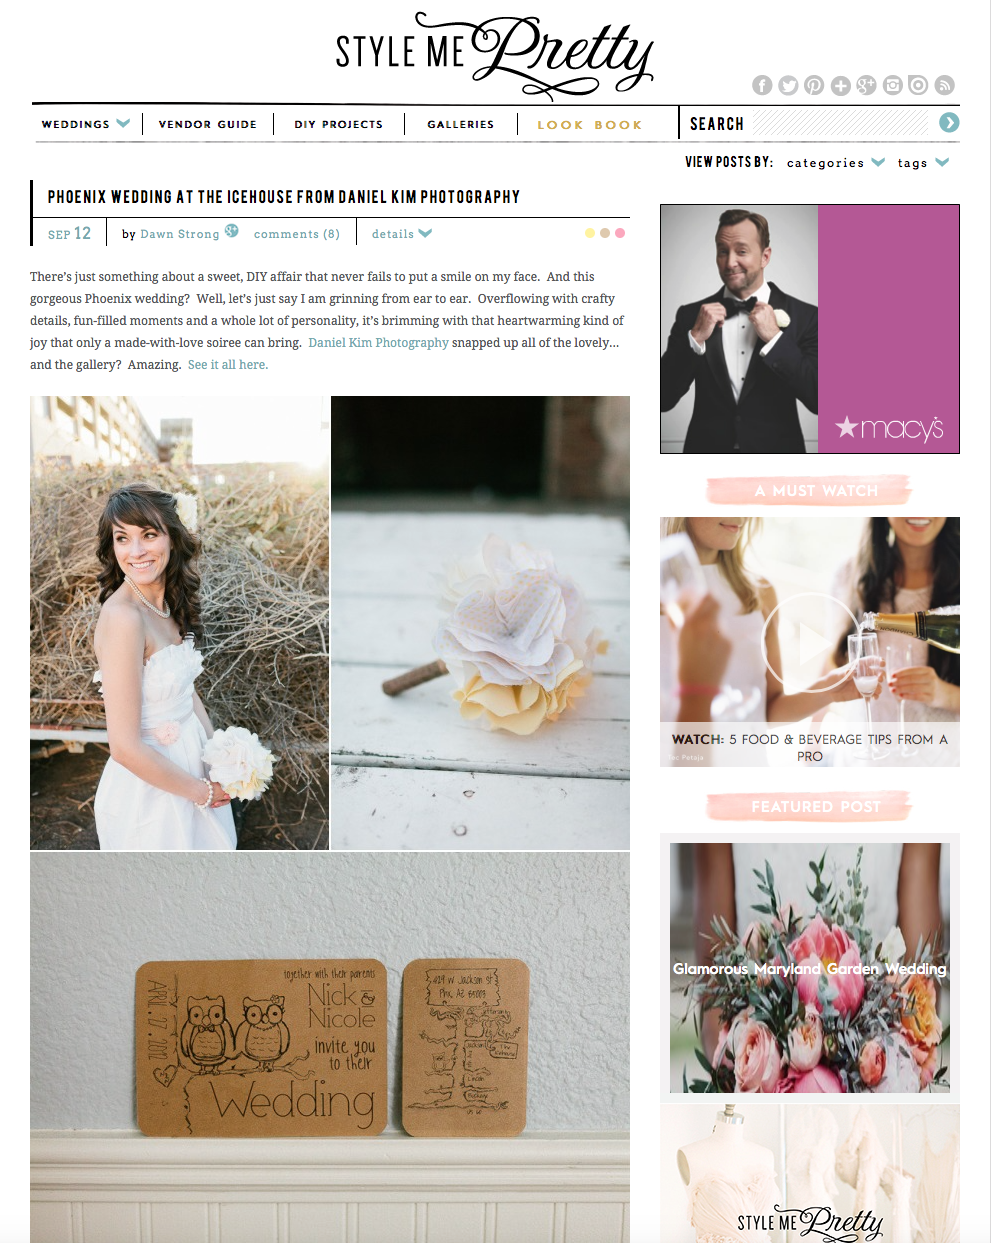 See our wedding with our DIY decor on Style Me Pretty